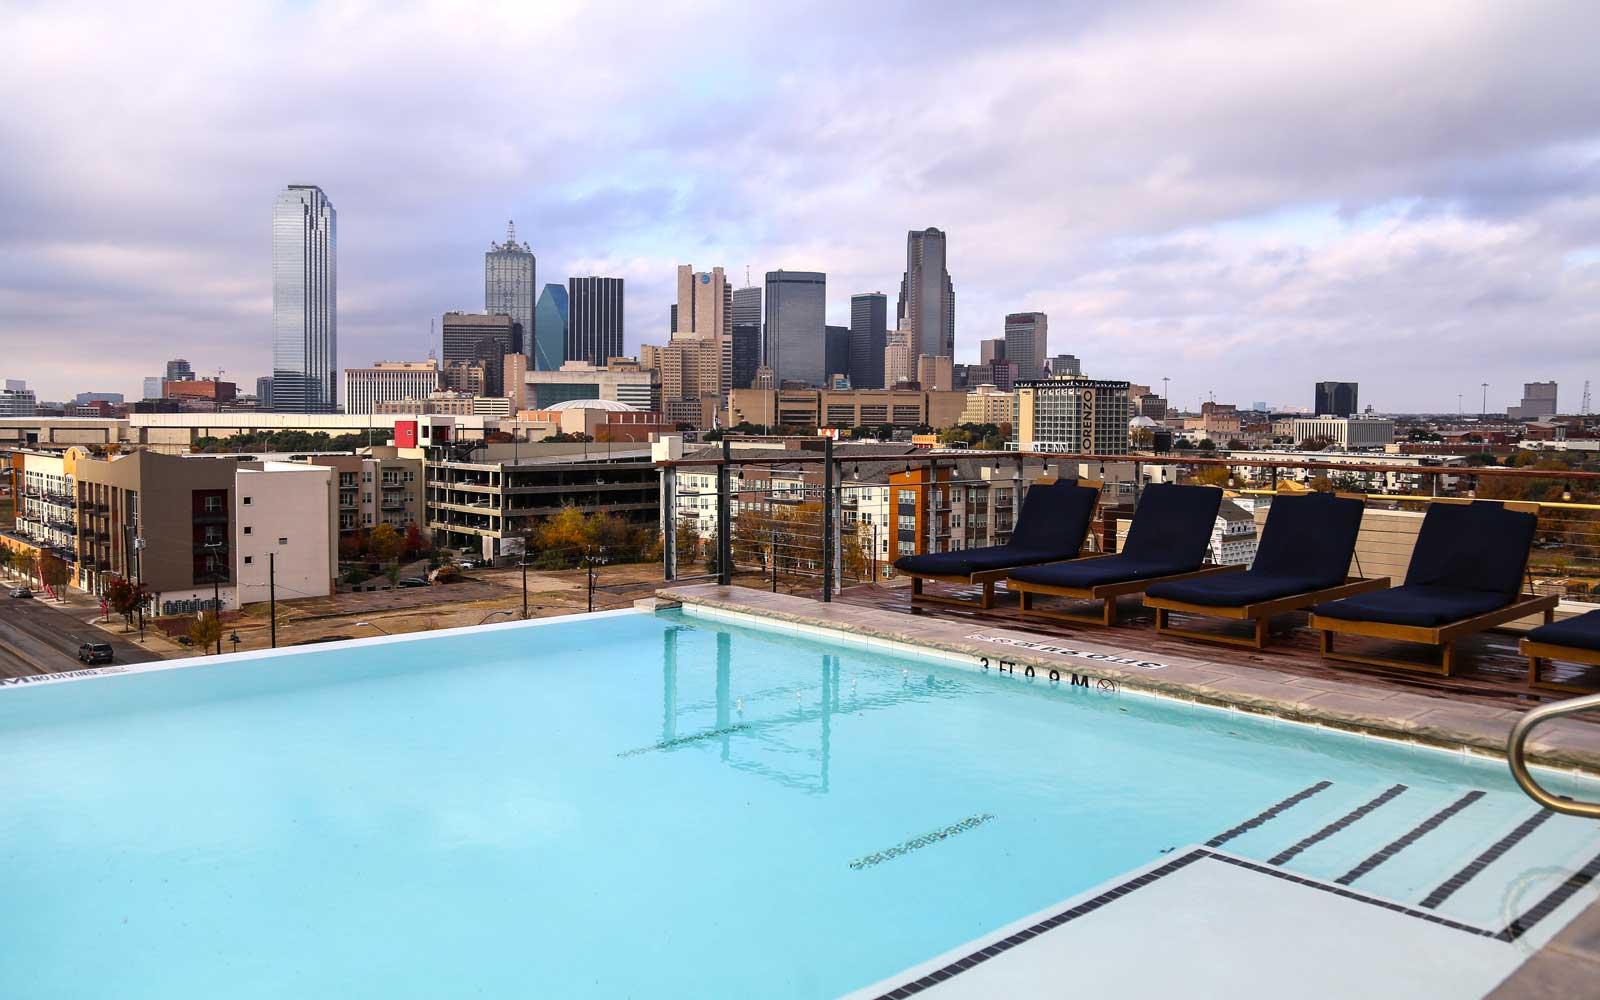 Rooftop Bars in Dallas